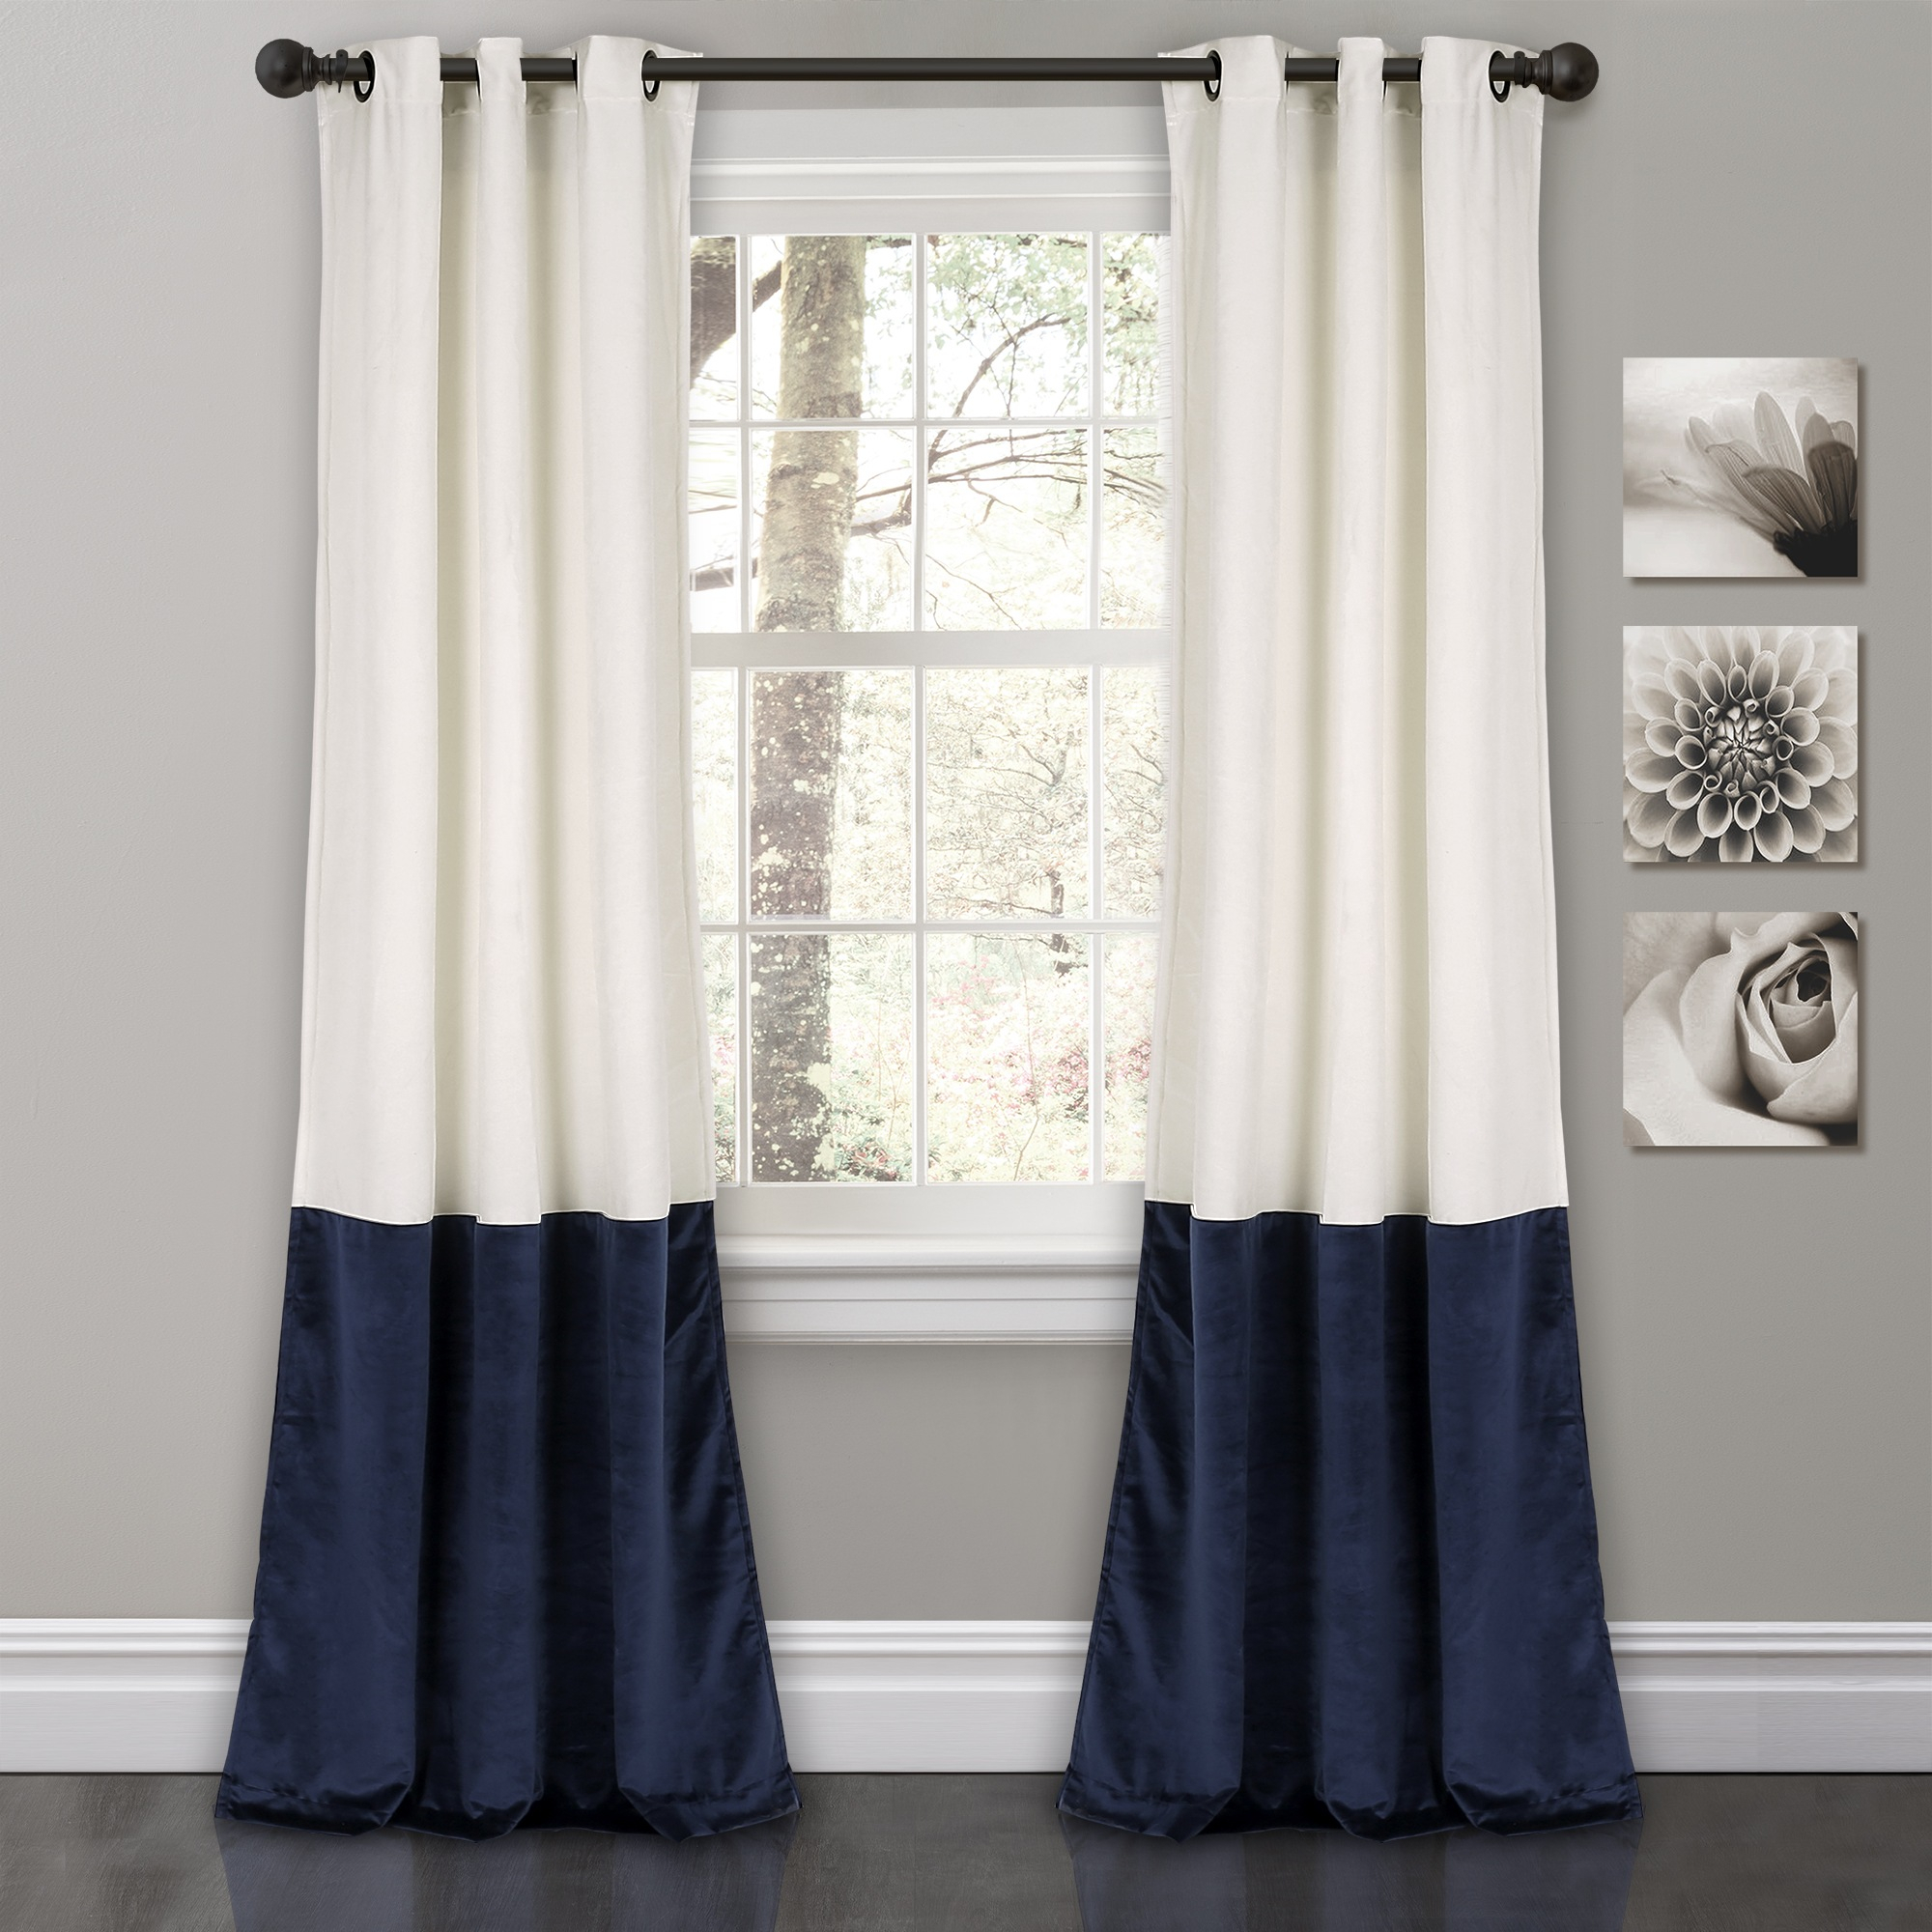 Velvet Room Darkening Window Curtain Set (View 20 of 30)